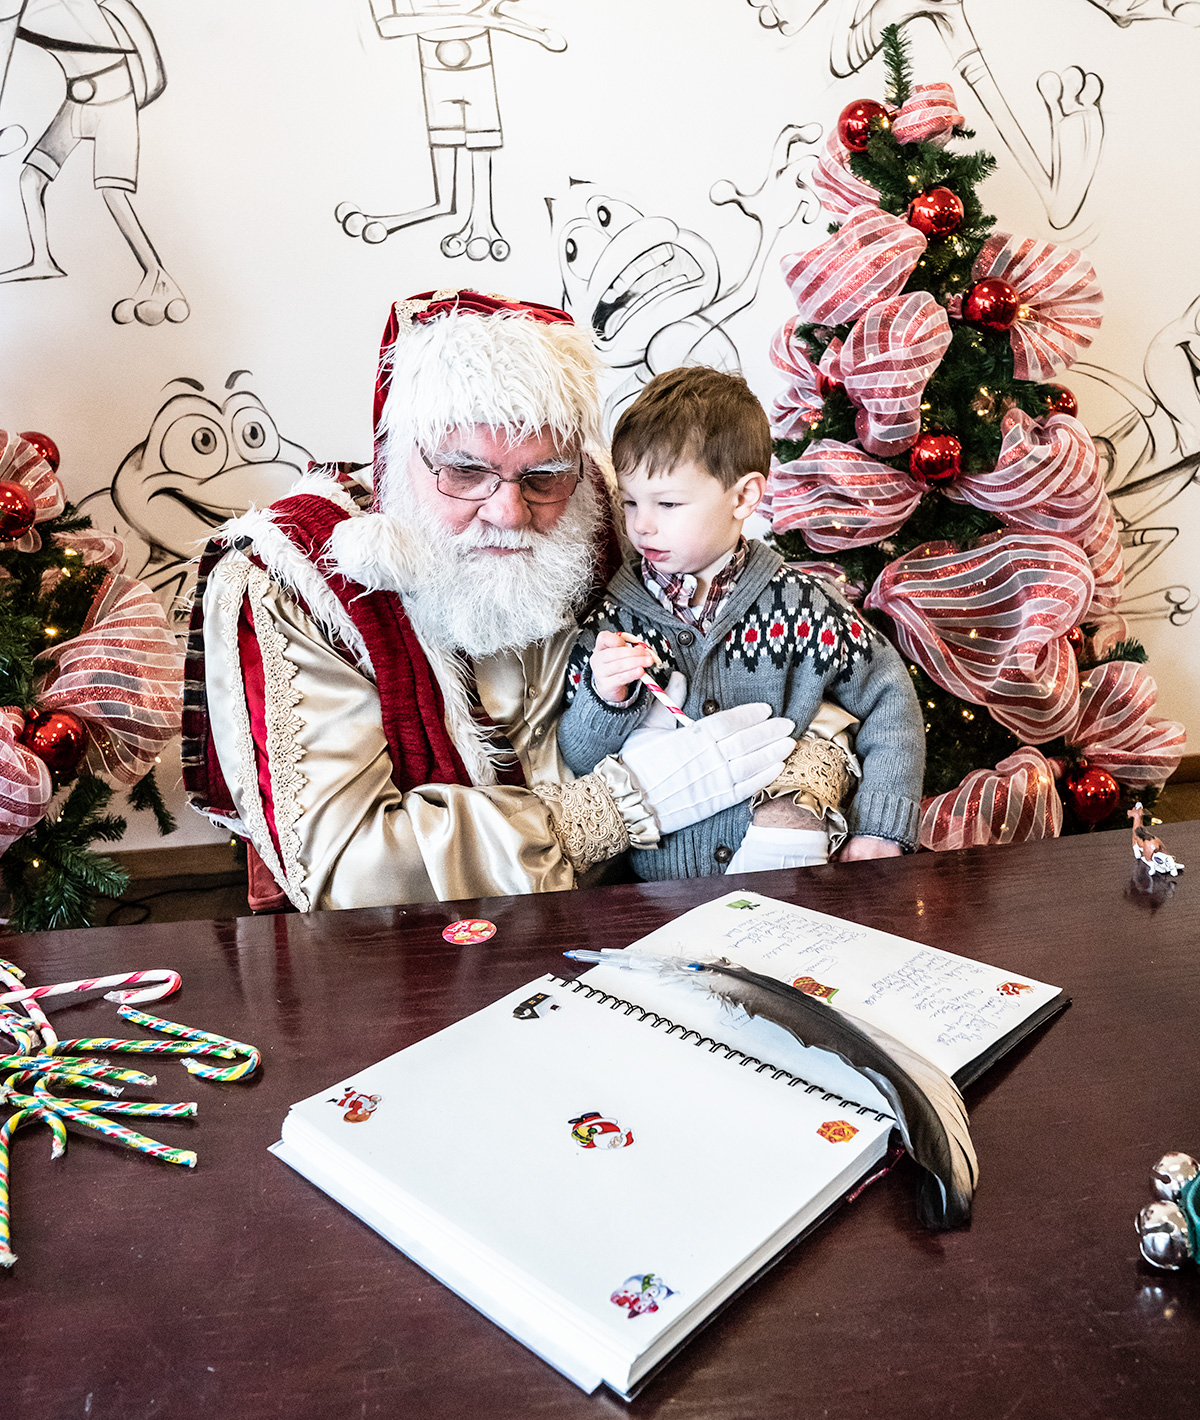 Meet-Santa-at-Benjo-Quebec-city